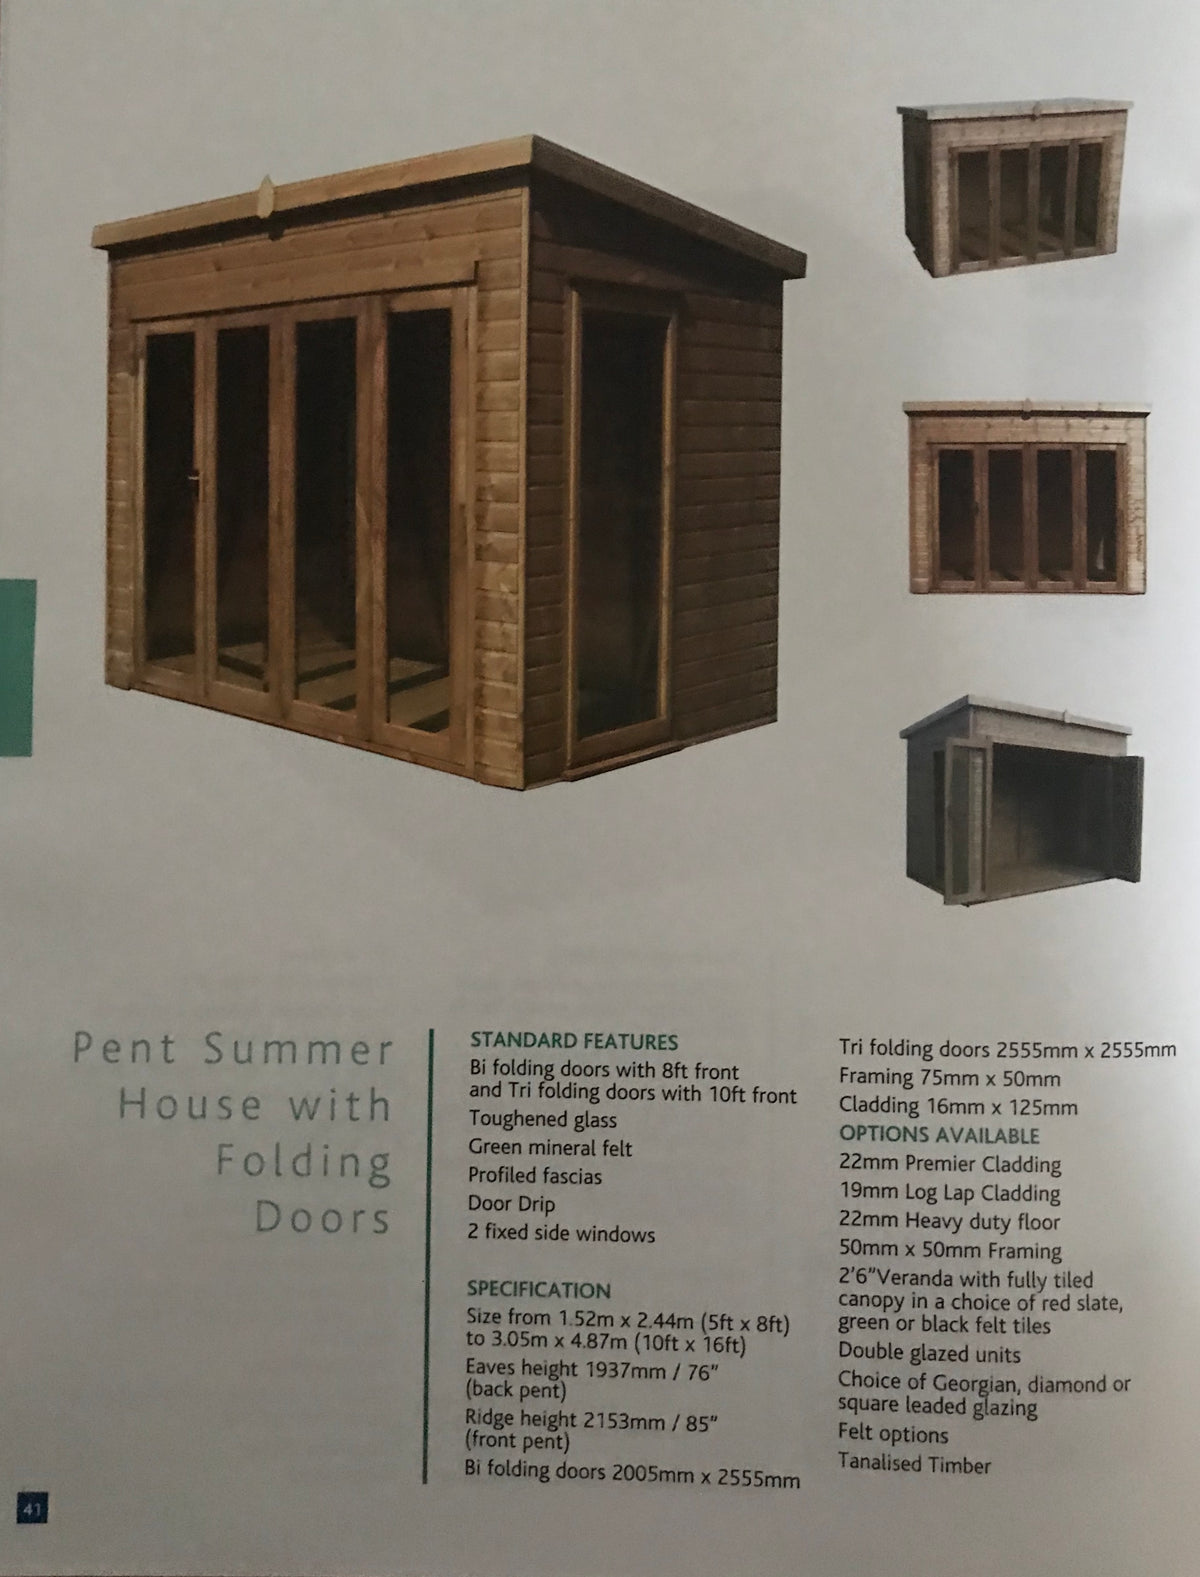 Pent Summerhouse with Folding Doors